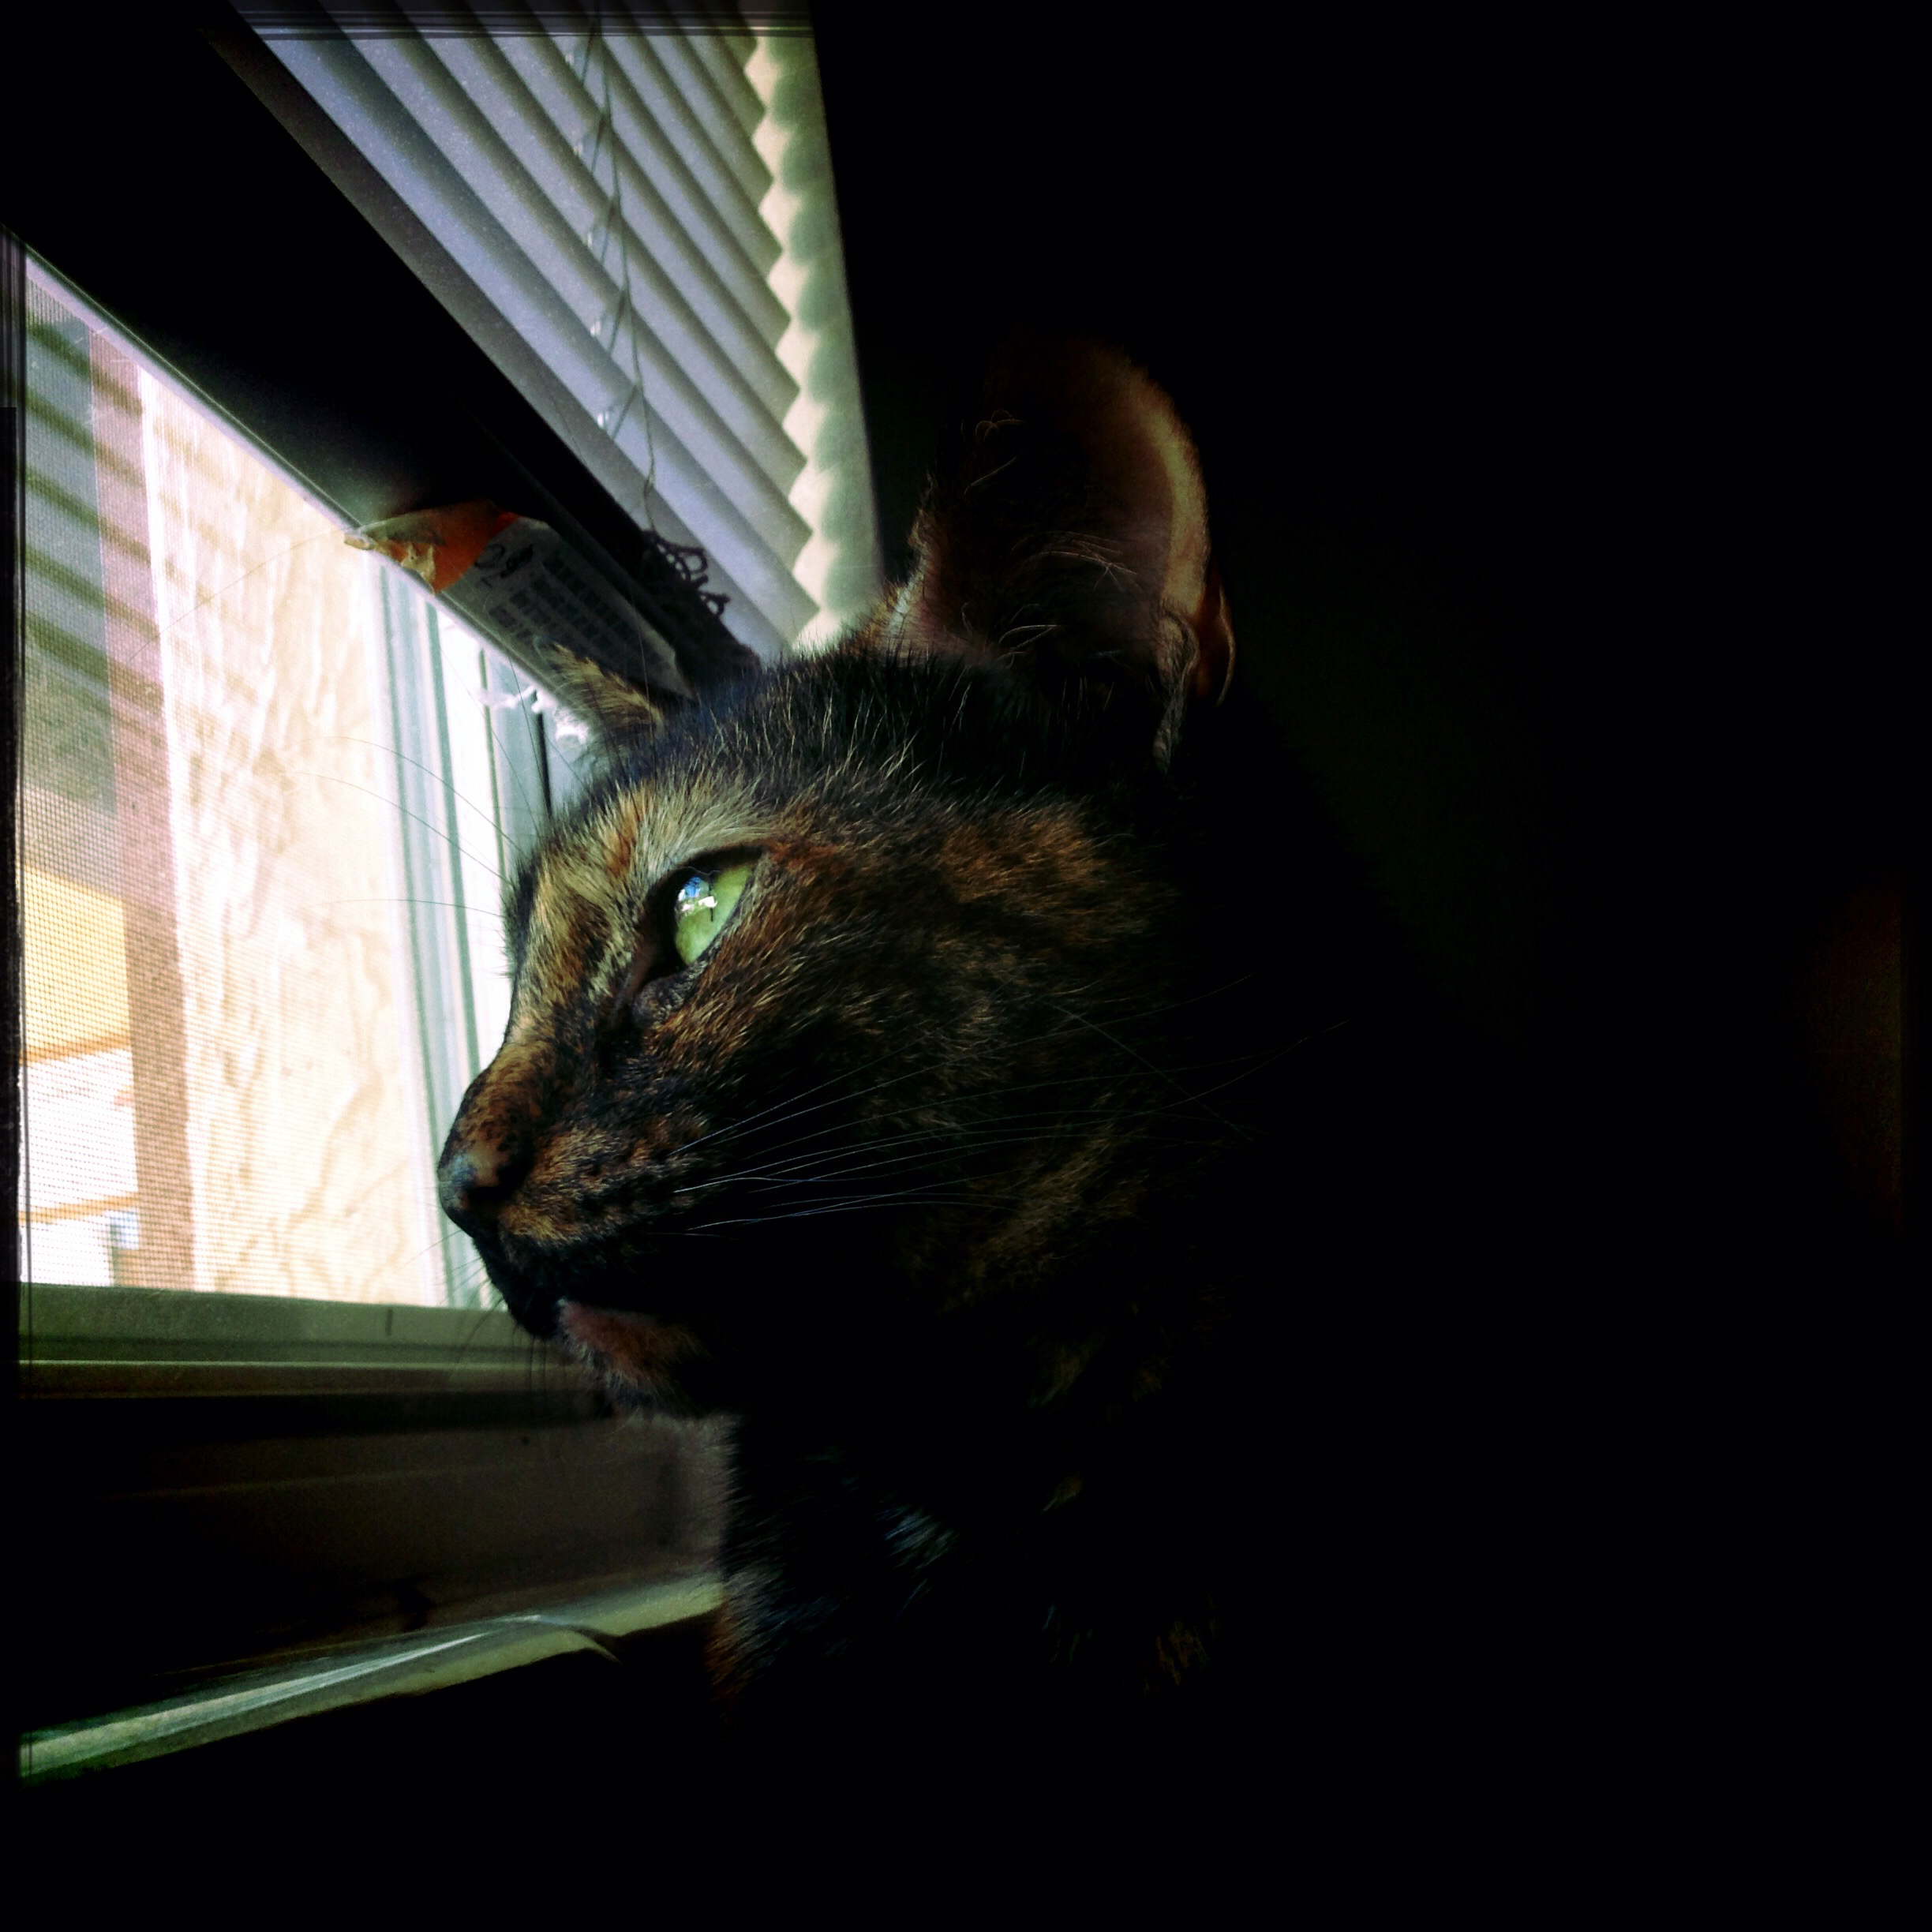 Marbles in the Window by fuzzyedges